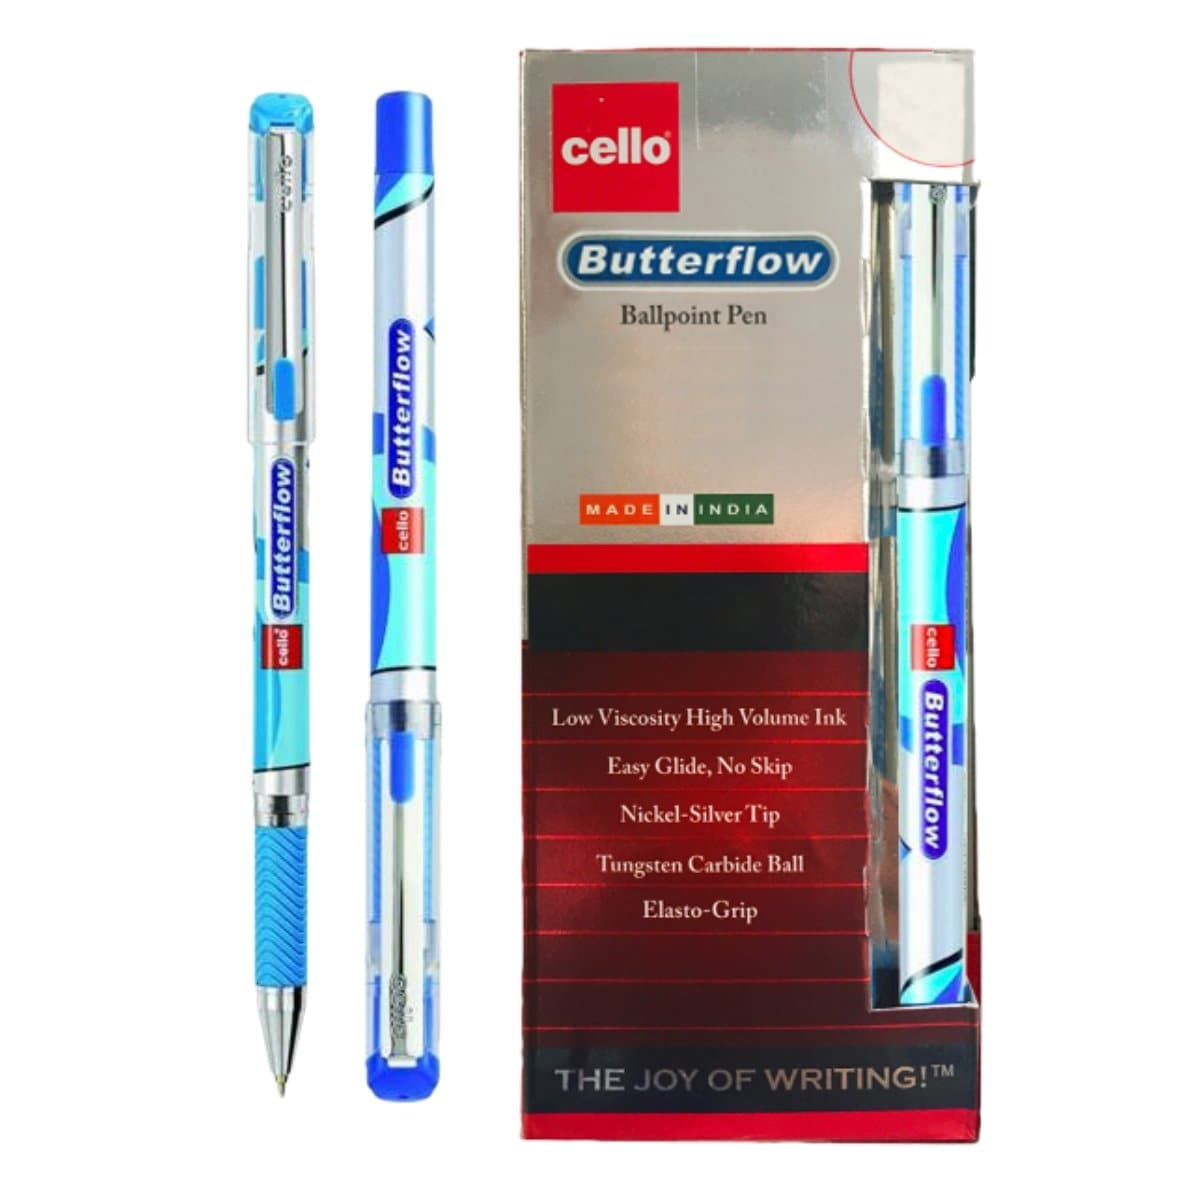 Cello Ballpoint Pen Butterflow, 0.7mm, 12/box, Blue